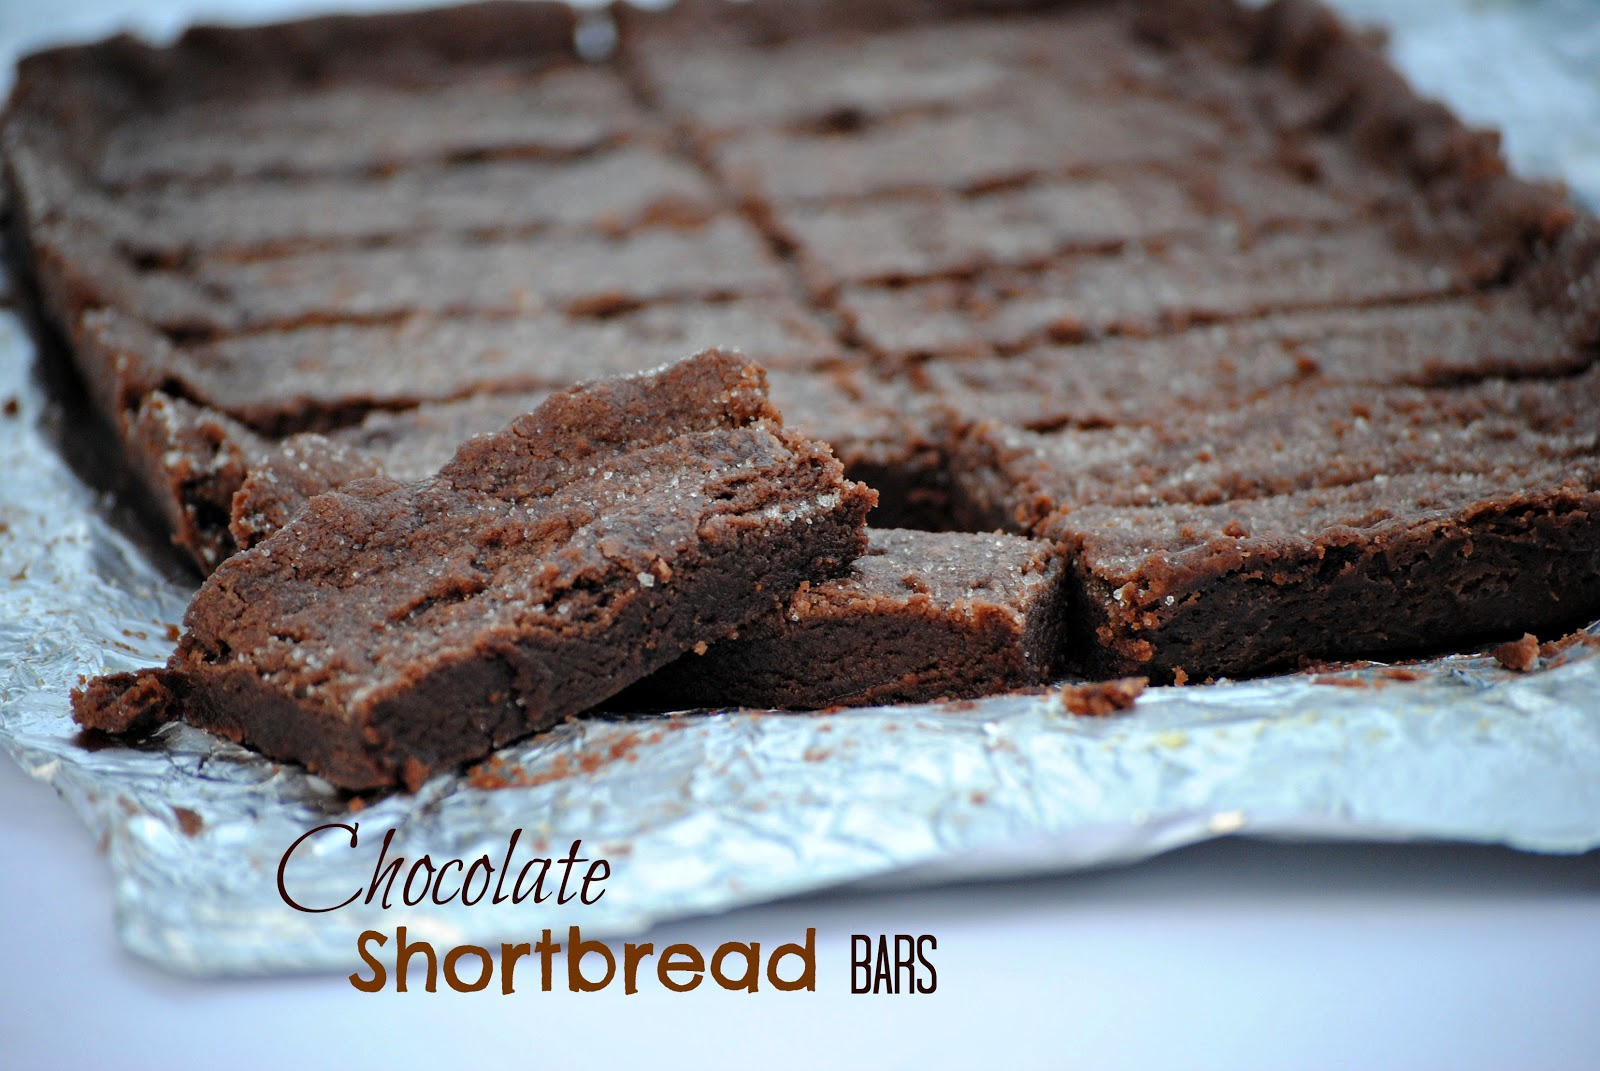 Chocolate Shortbread Bars